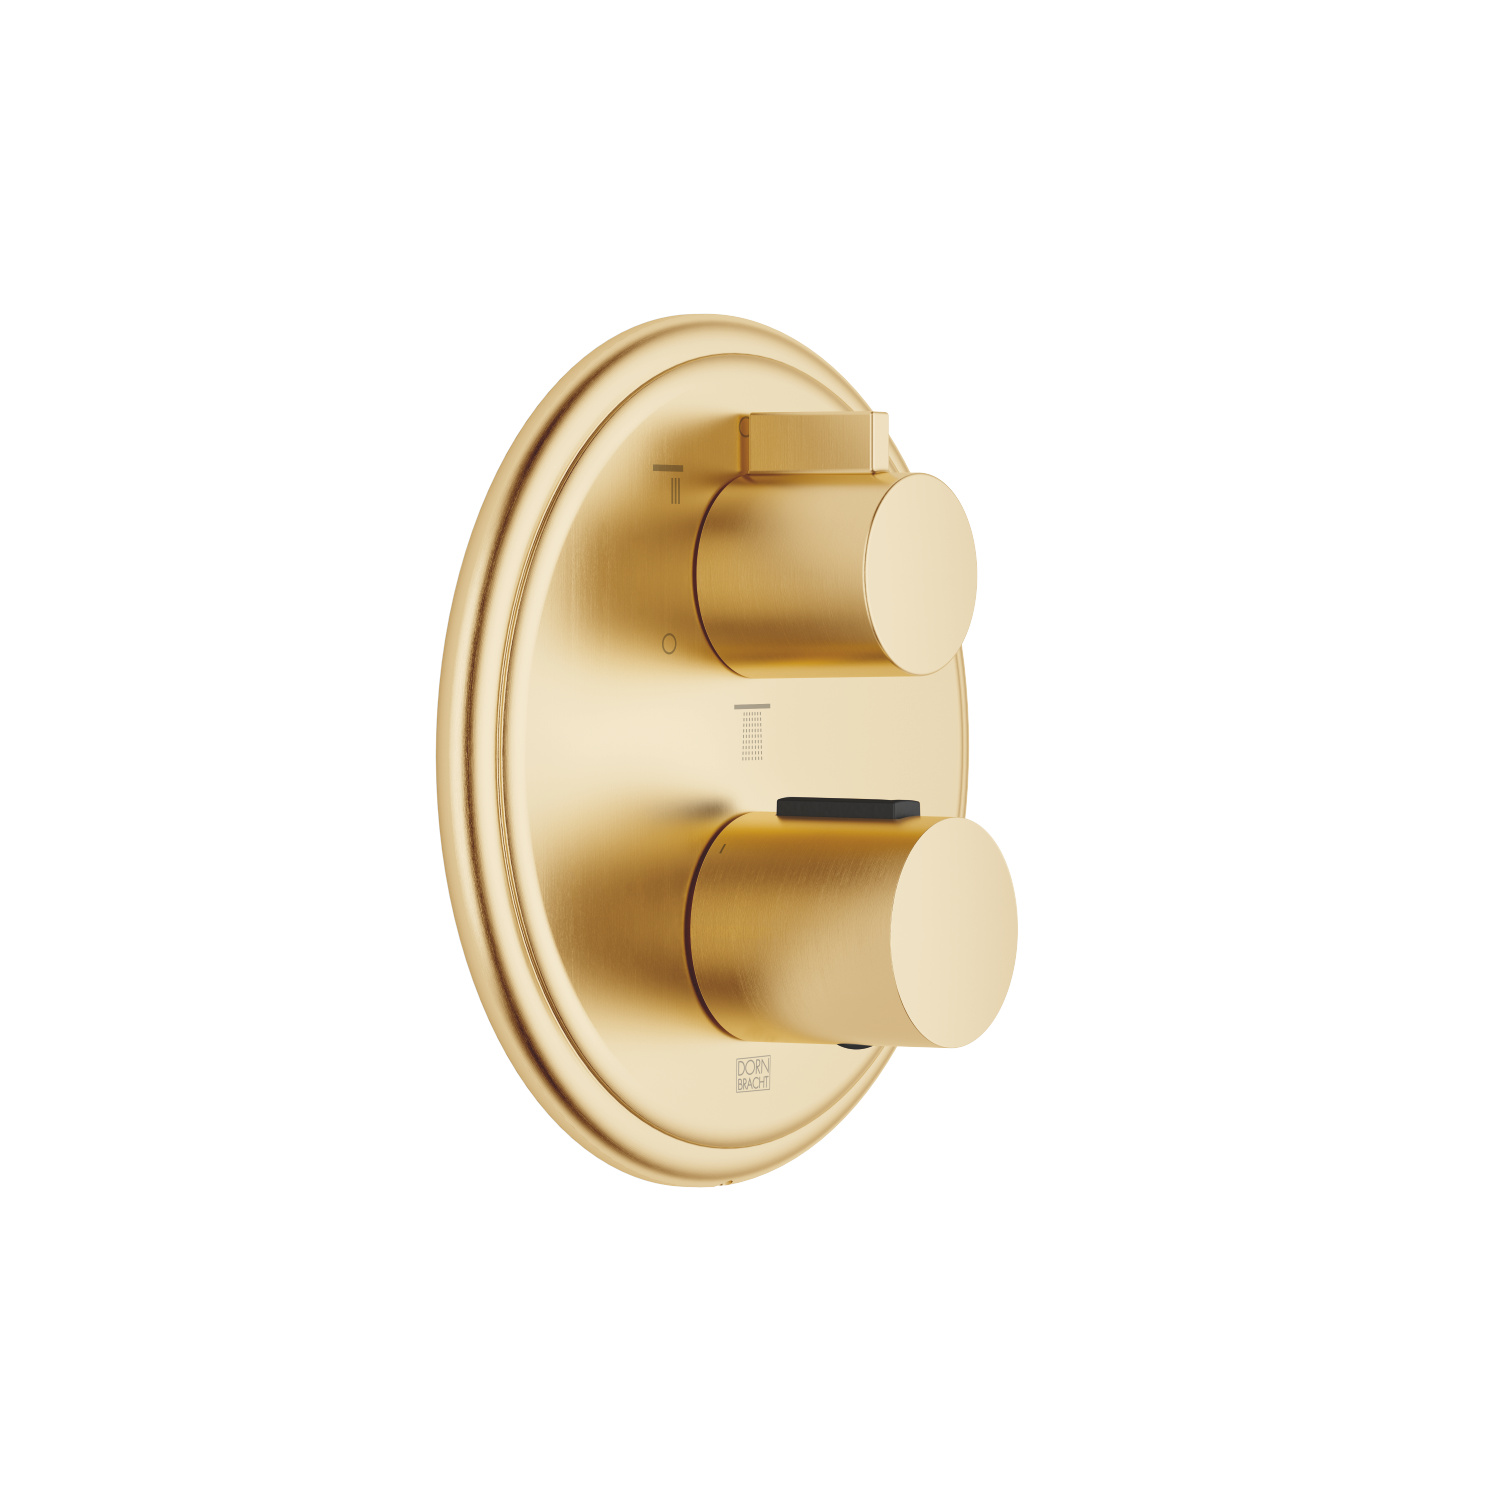 Concealed thermostat with three-way volume control - Brushed Durabrass